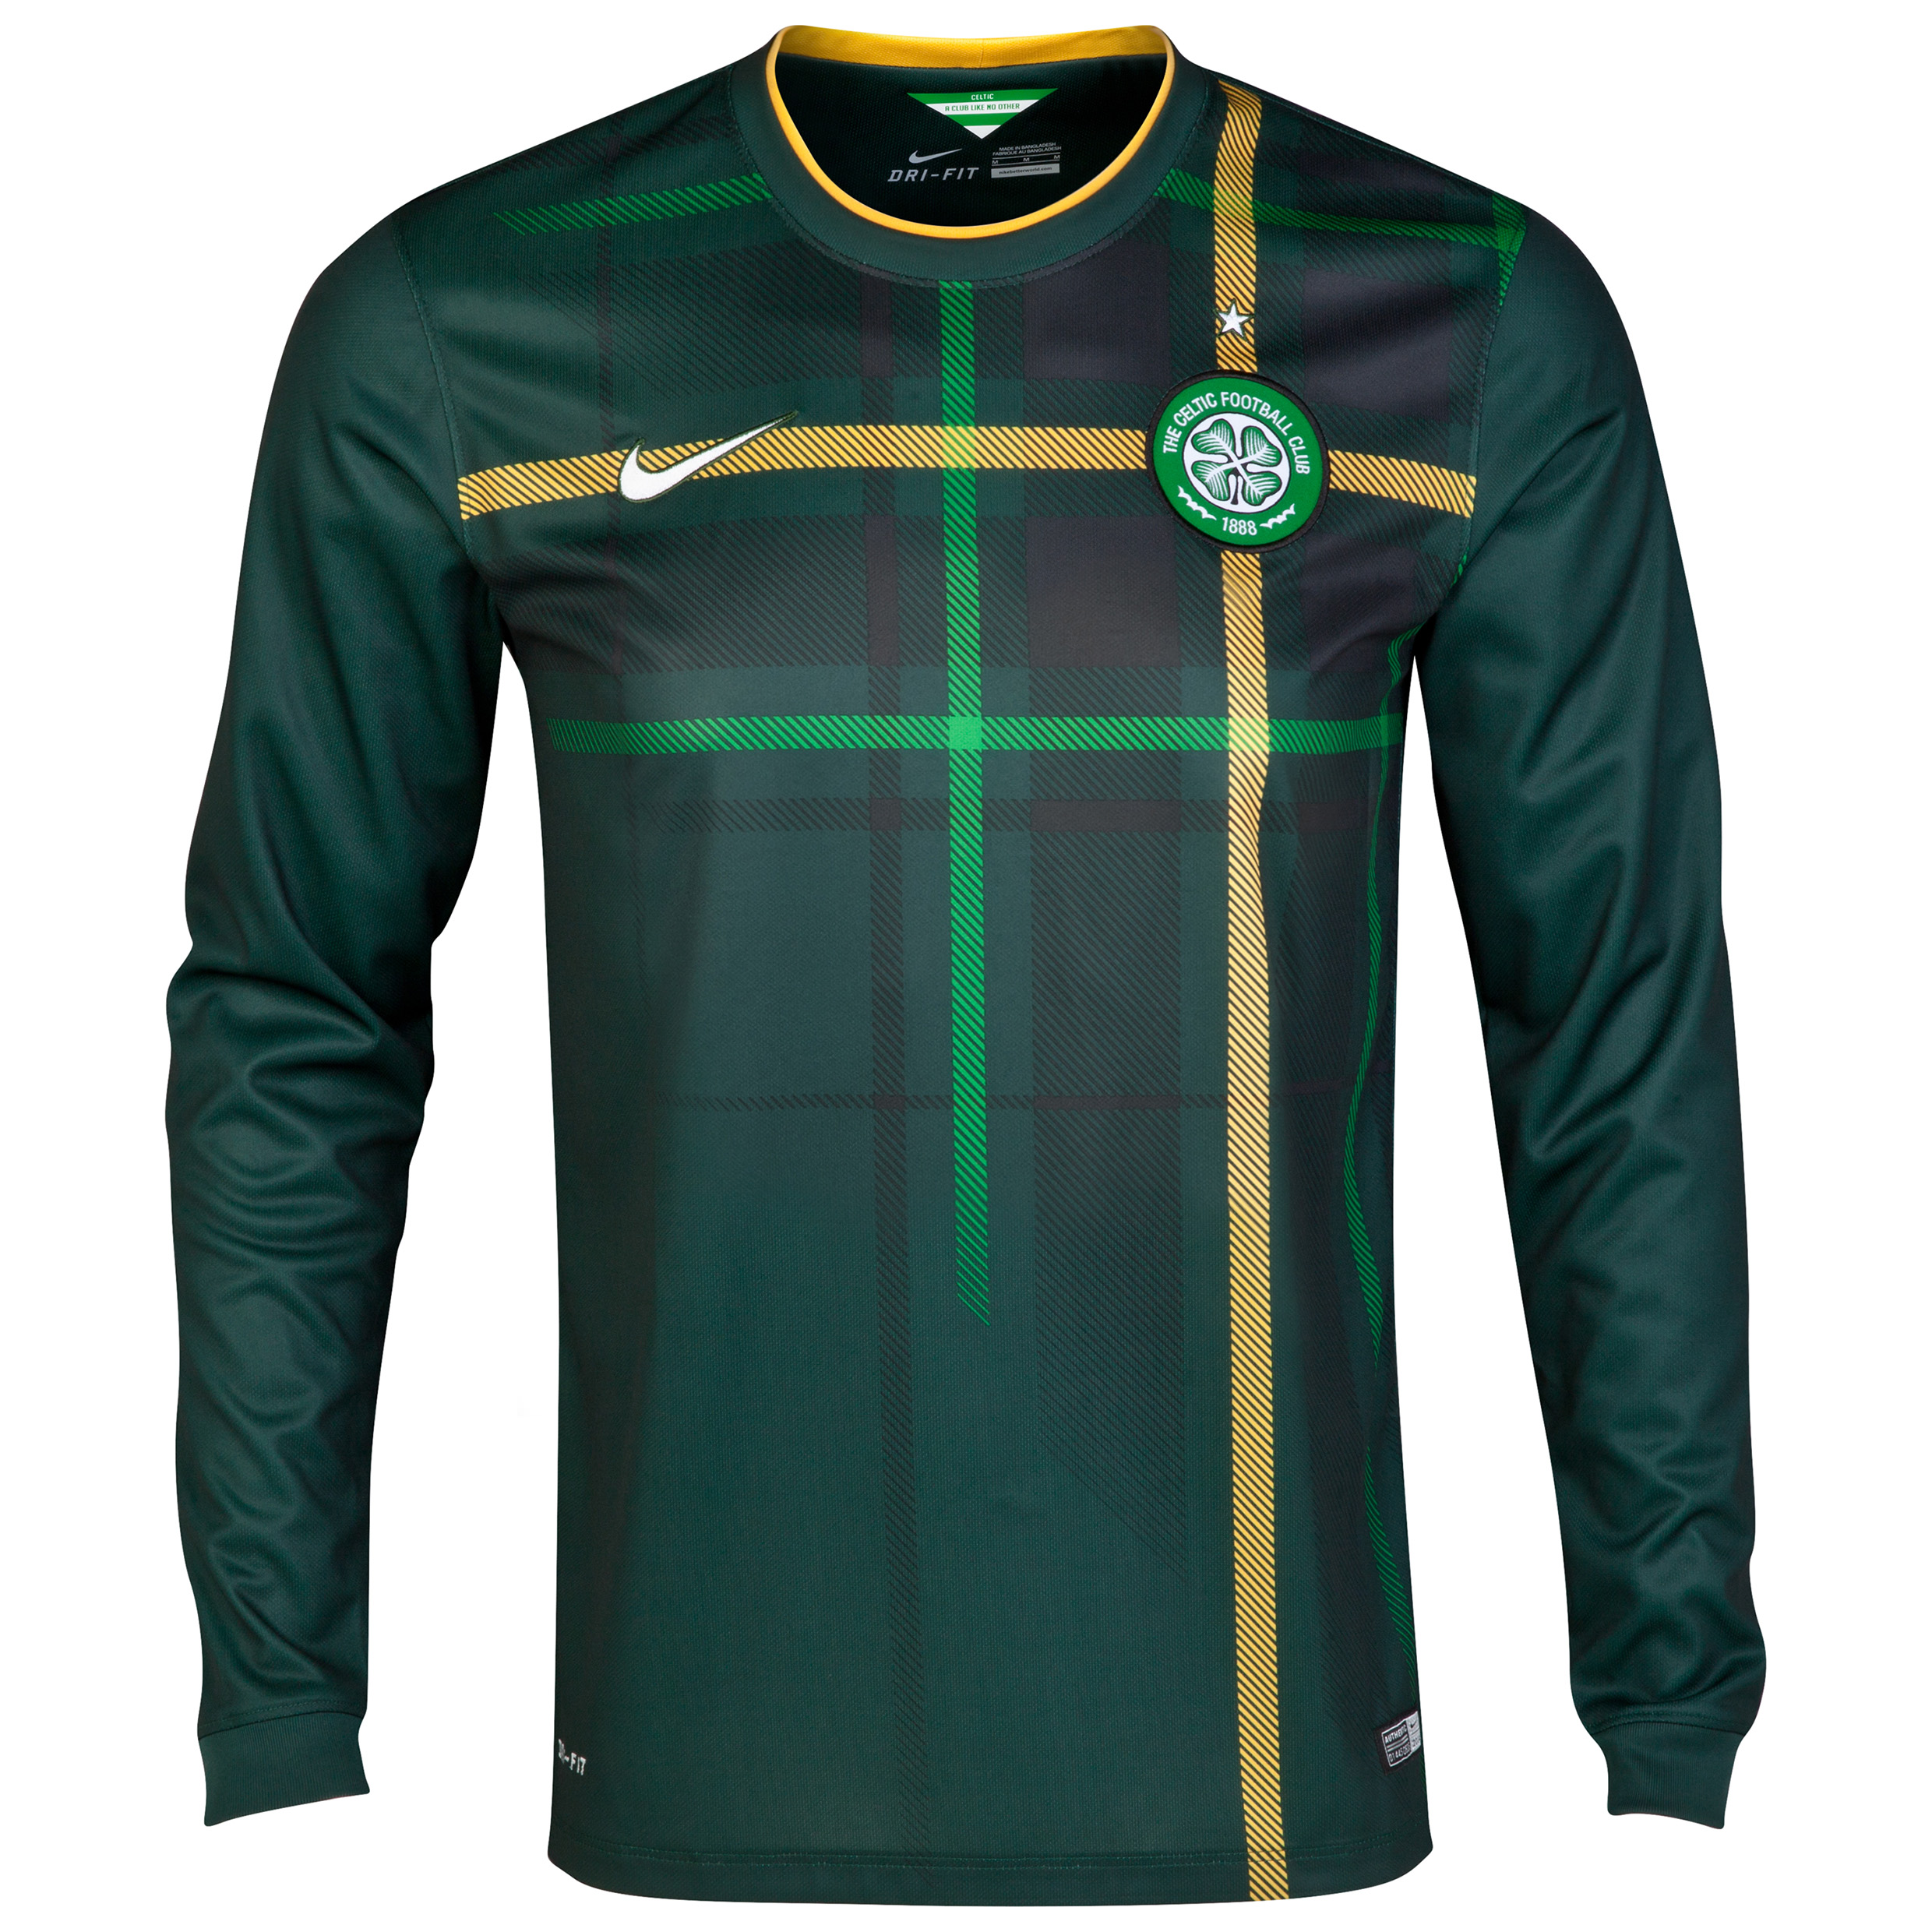 Celtic Away Shirt 2014/15 - Long Sleeved - Unsponsored Green